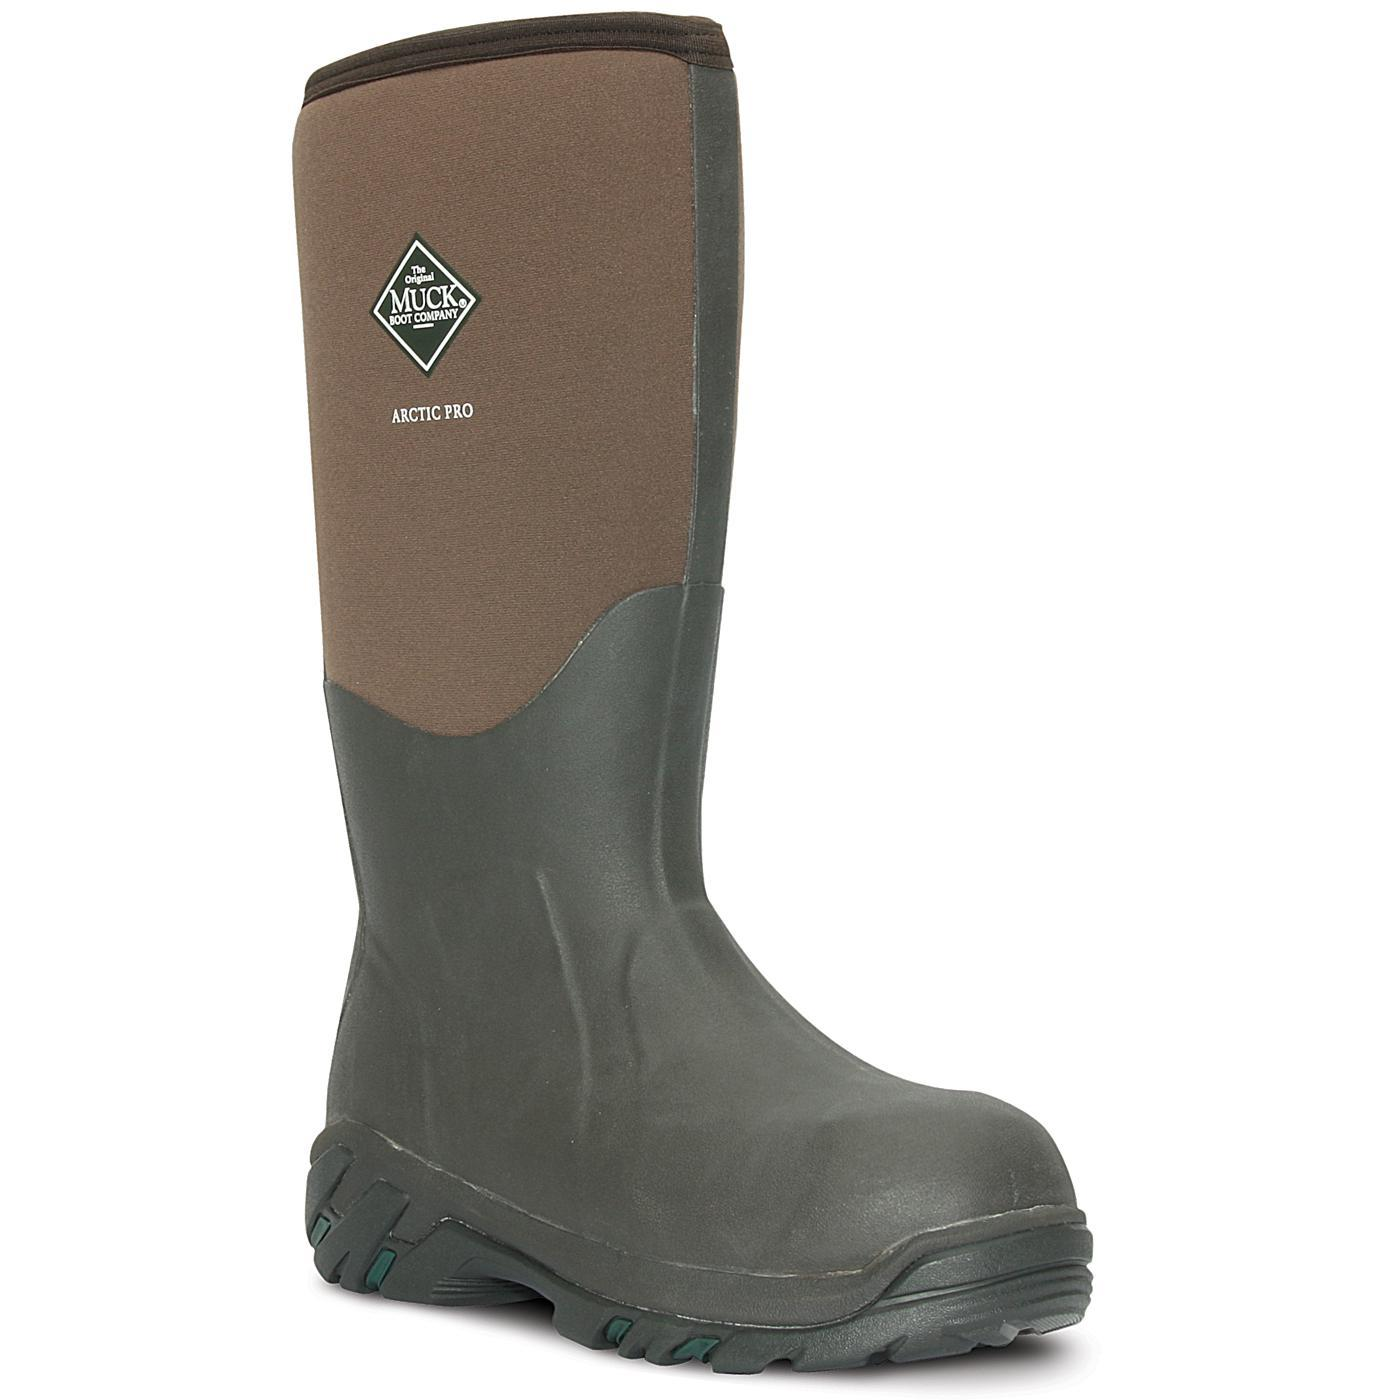 a93154acf37 Muck Arctic Pro Waterproof Insulated Outdoor Boot